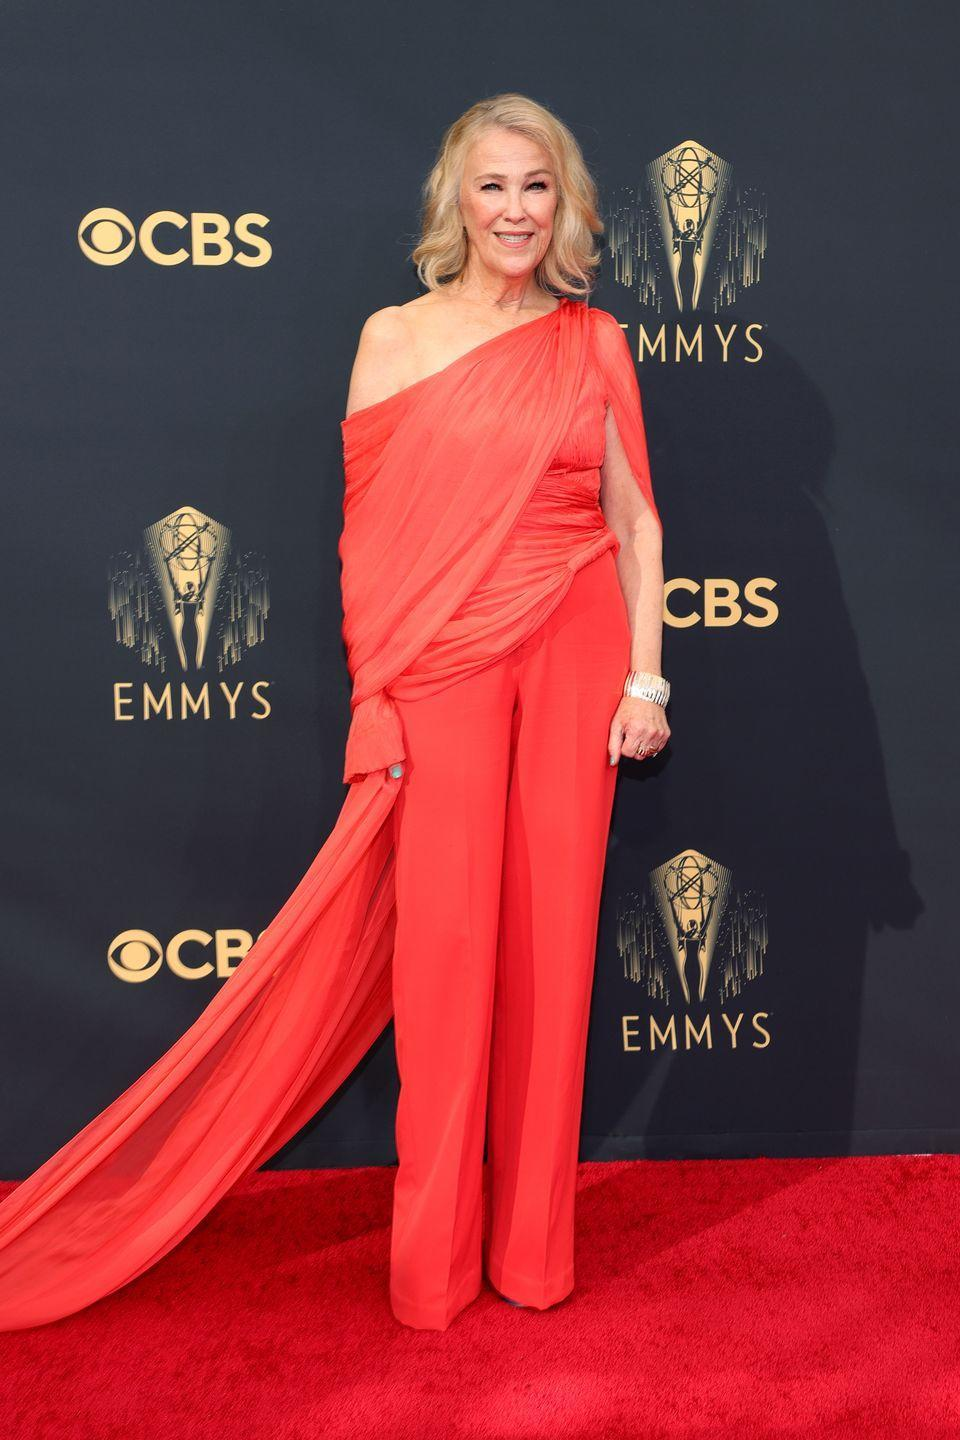 <p>Catherine O'Hara brought some colour to the red carpet, wearing a beautiful bright red design by Cong Tri. The ensemble was made up of an off-the-shoulder jumpsuit with dramatic draping and a long train.</p>